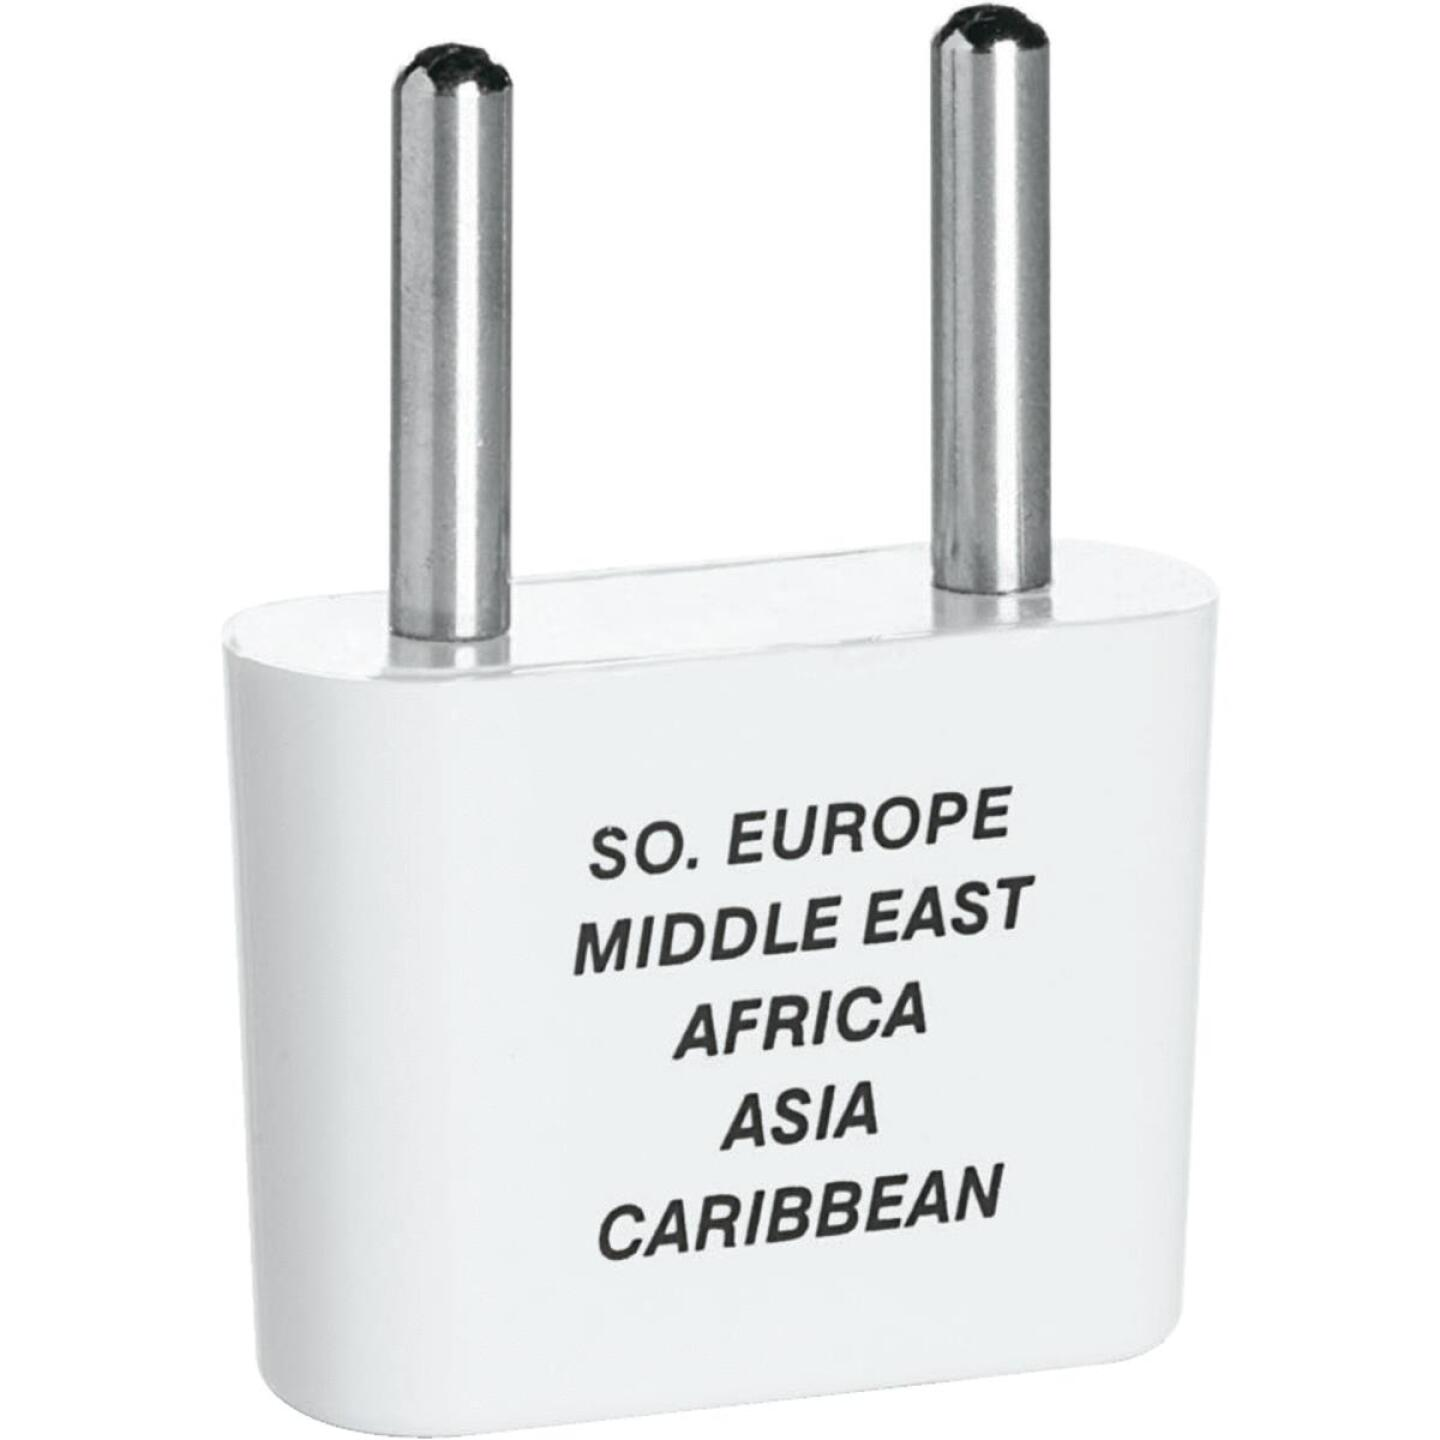 Franzus 2-Blade Thin Pin Foreign Adapter Plug, Europe/Africa/Middle East/Asia Image 1